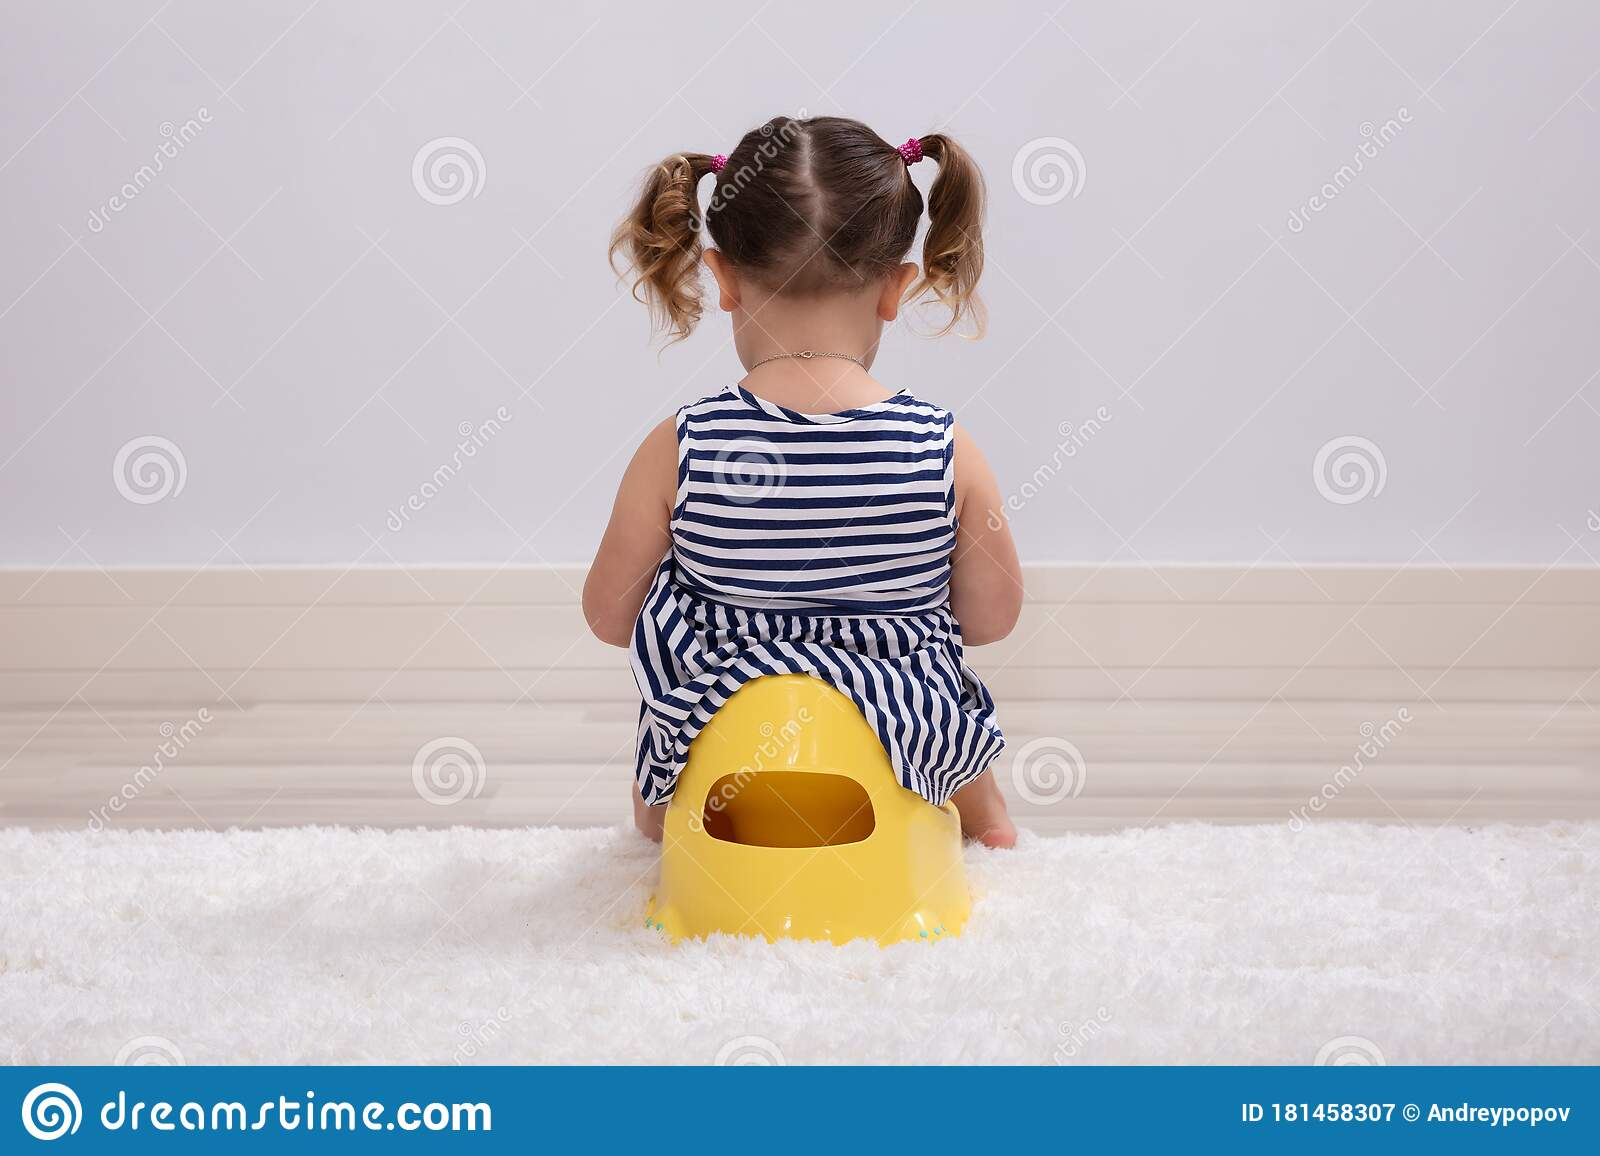 Toddler girl sitting on potty holding toilet paper while